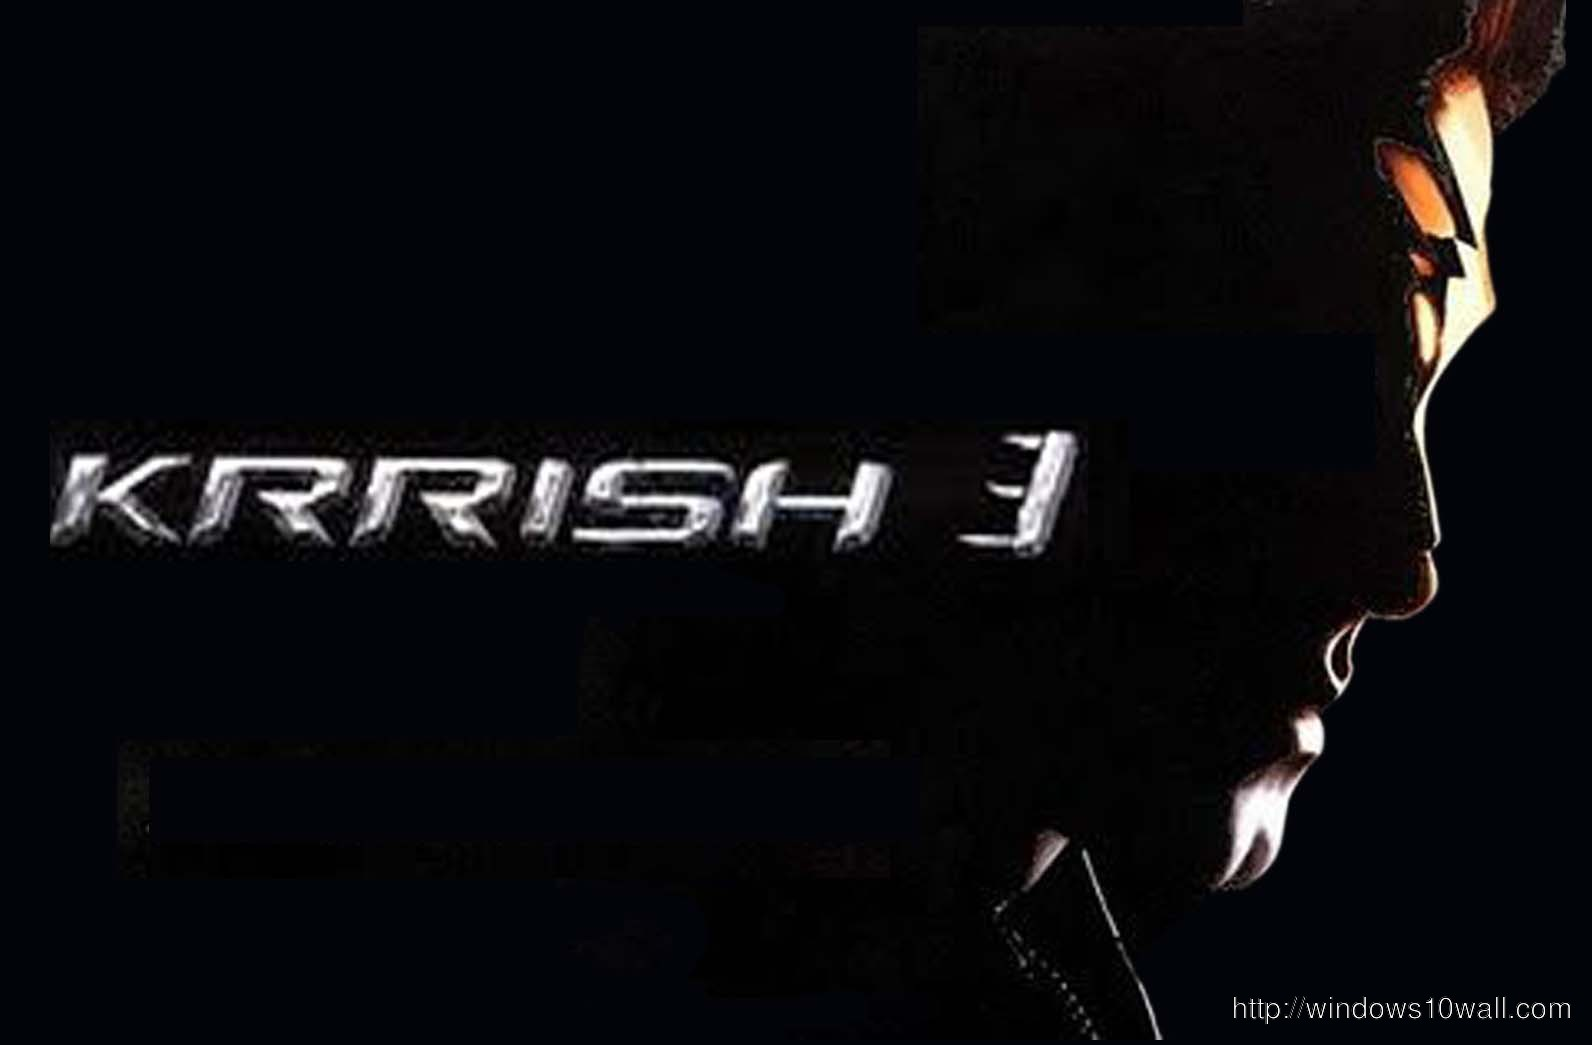 Krish 3 Wallpaper In Full Size